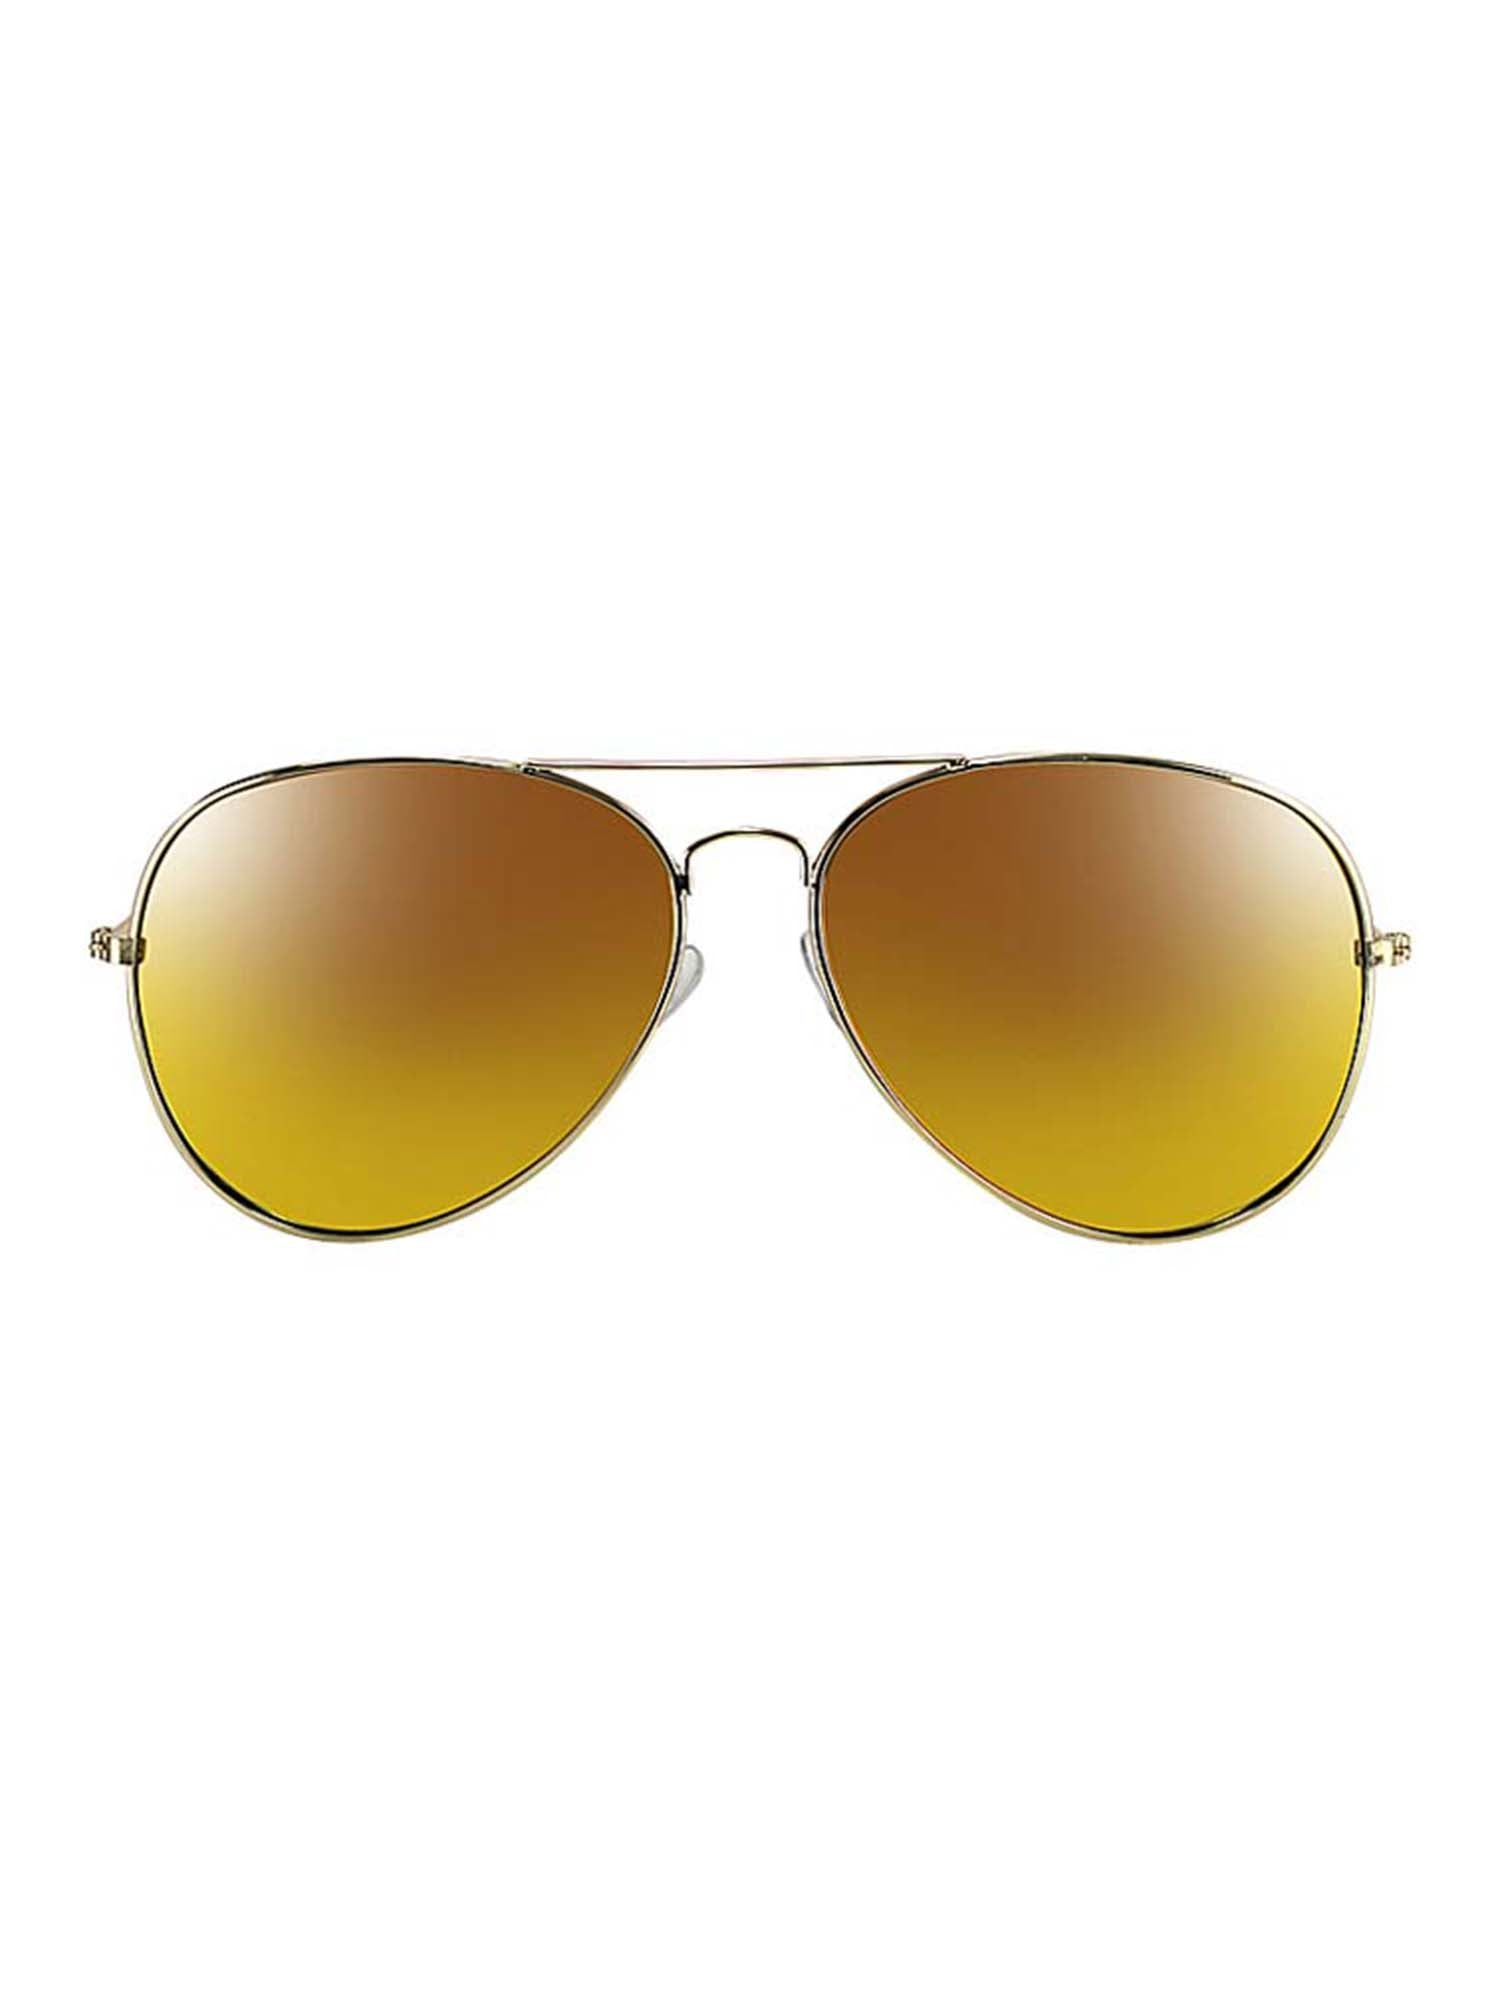 Gold Frame Yellow Mirror Lens Aviator Sunglasses With Case